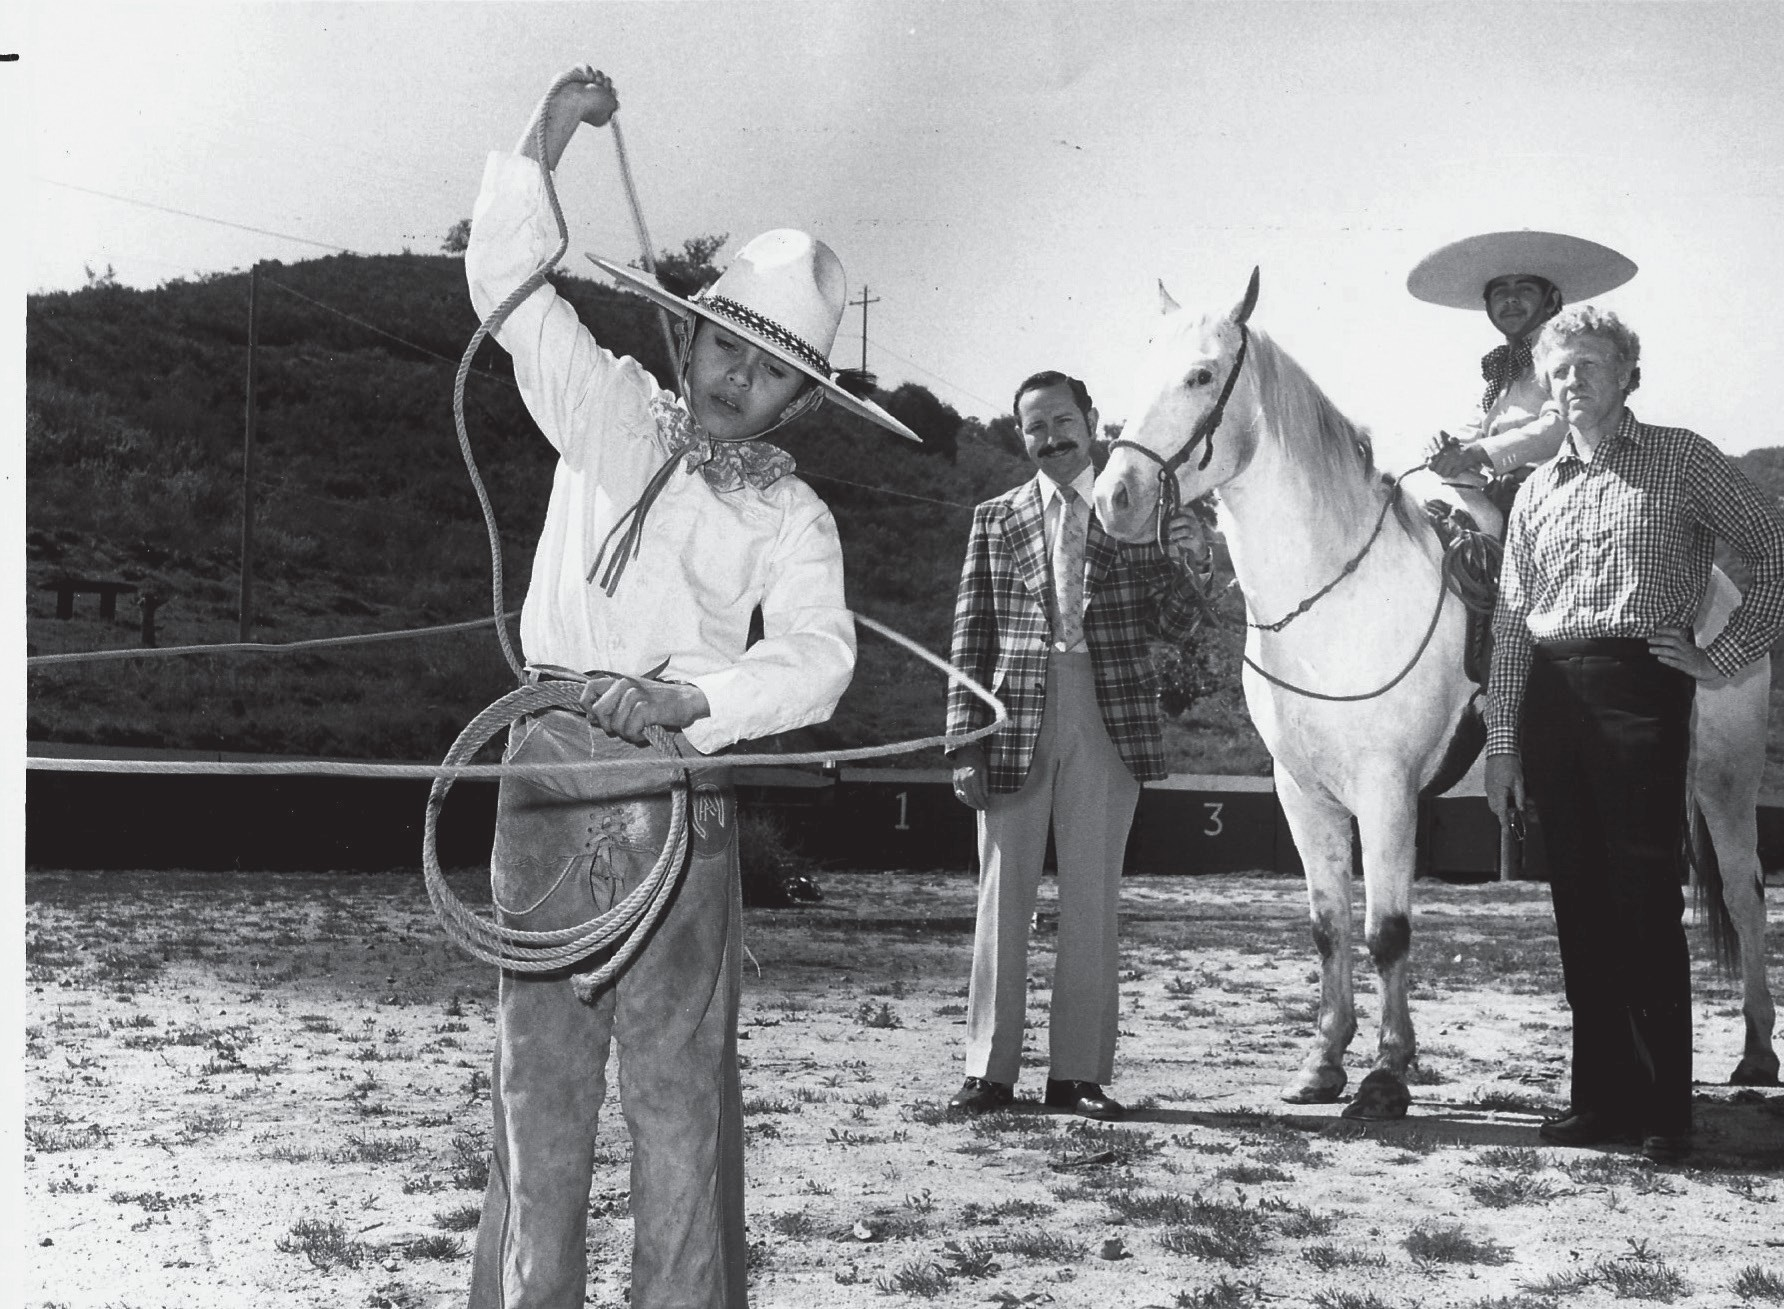 Tony was born into a family steeped in the Charreria tradition of rodeos, color­ful and spangled clothing and broad sombreros that derived from the horse­manship traditions of Spain. His family helped to start the Charro tradition in Escondido.